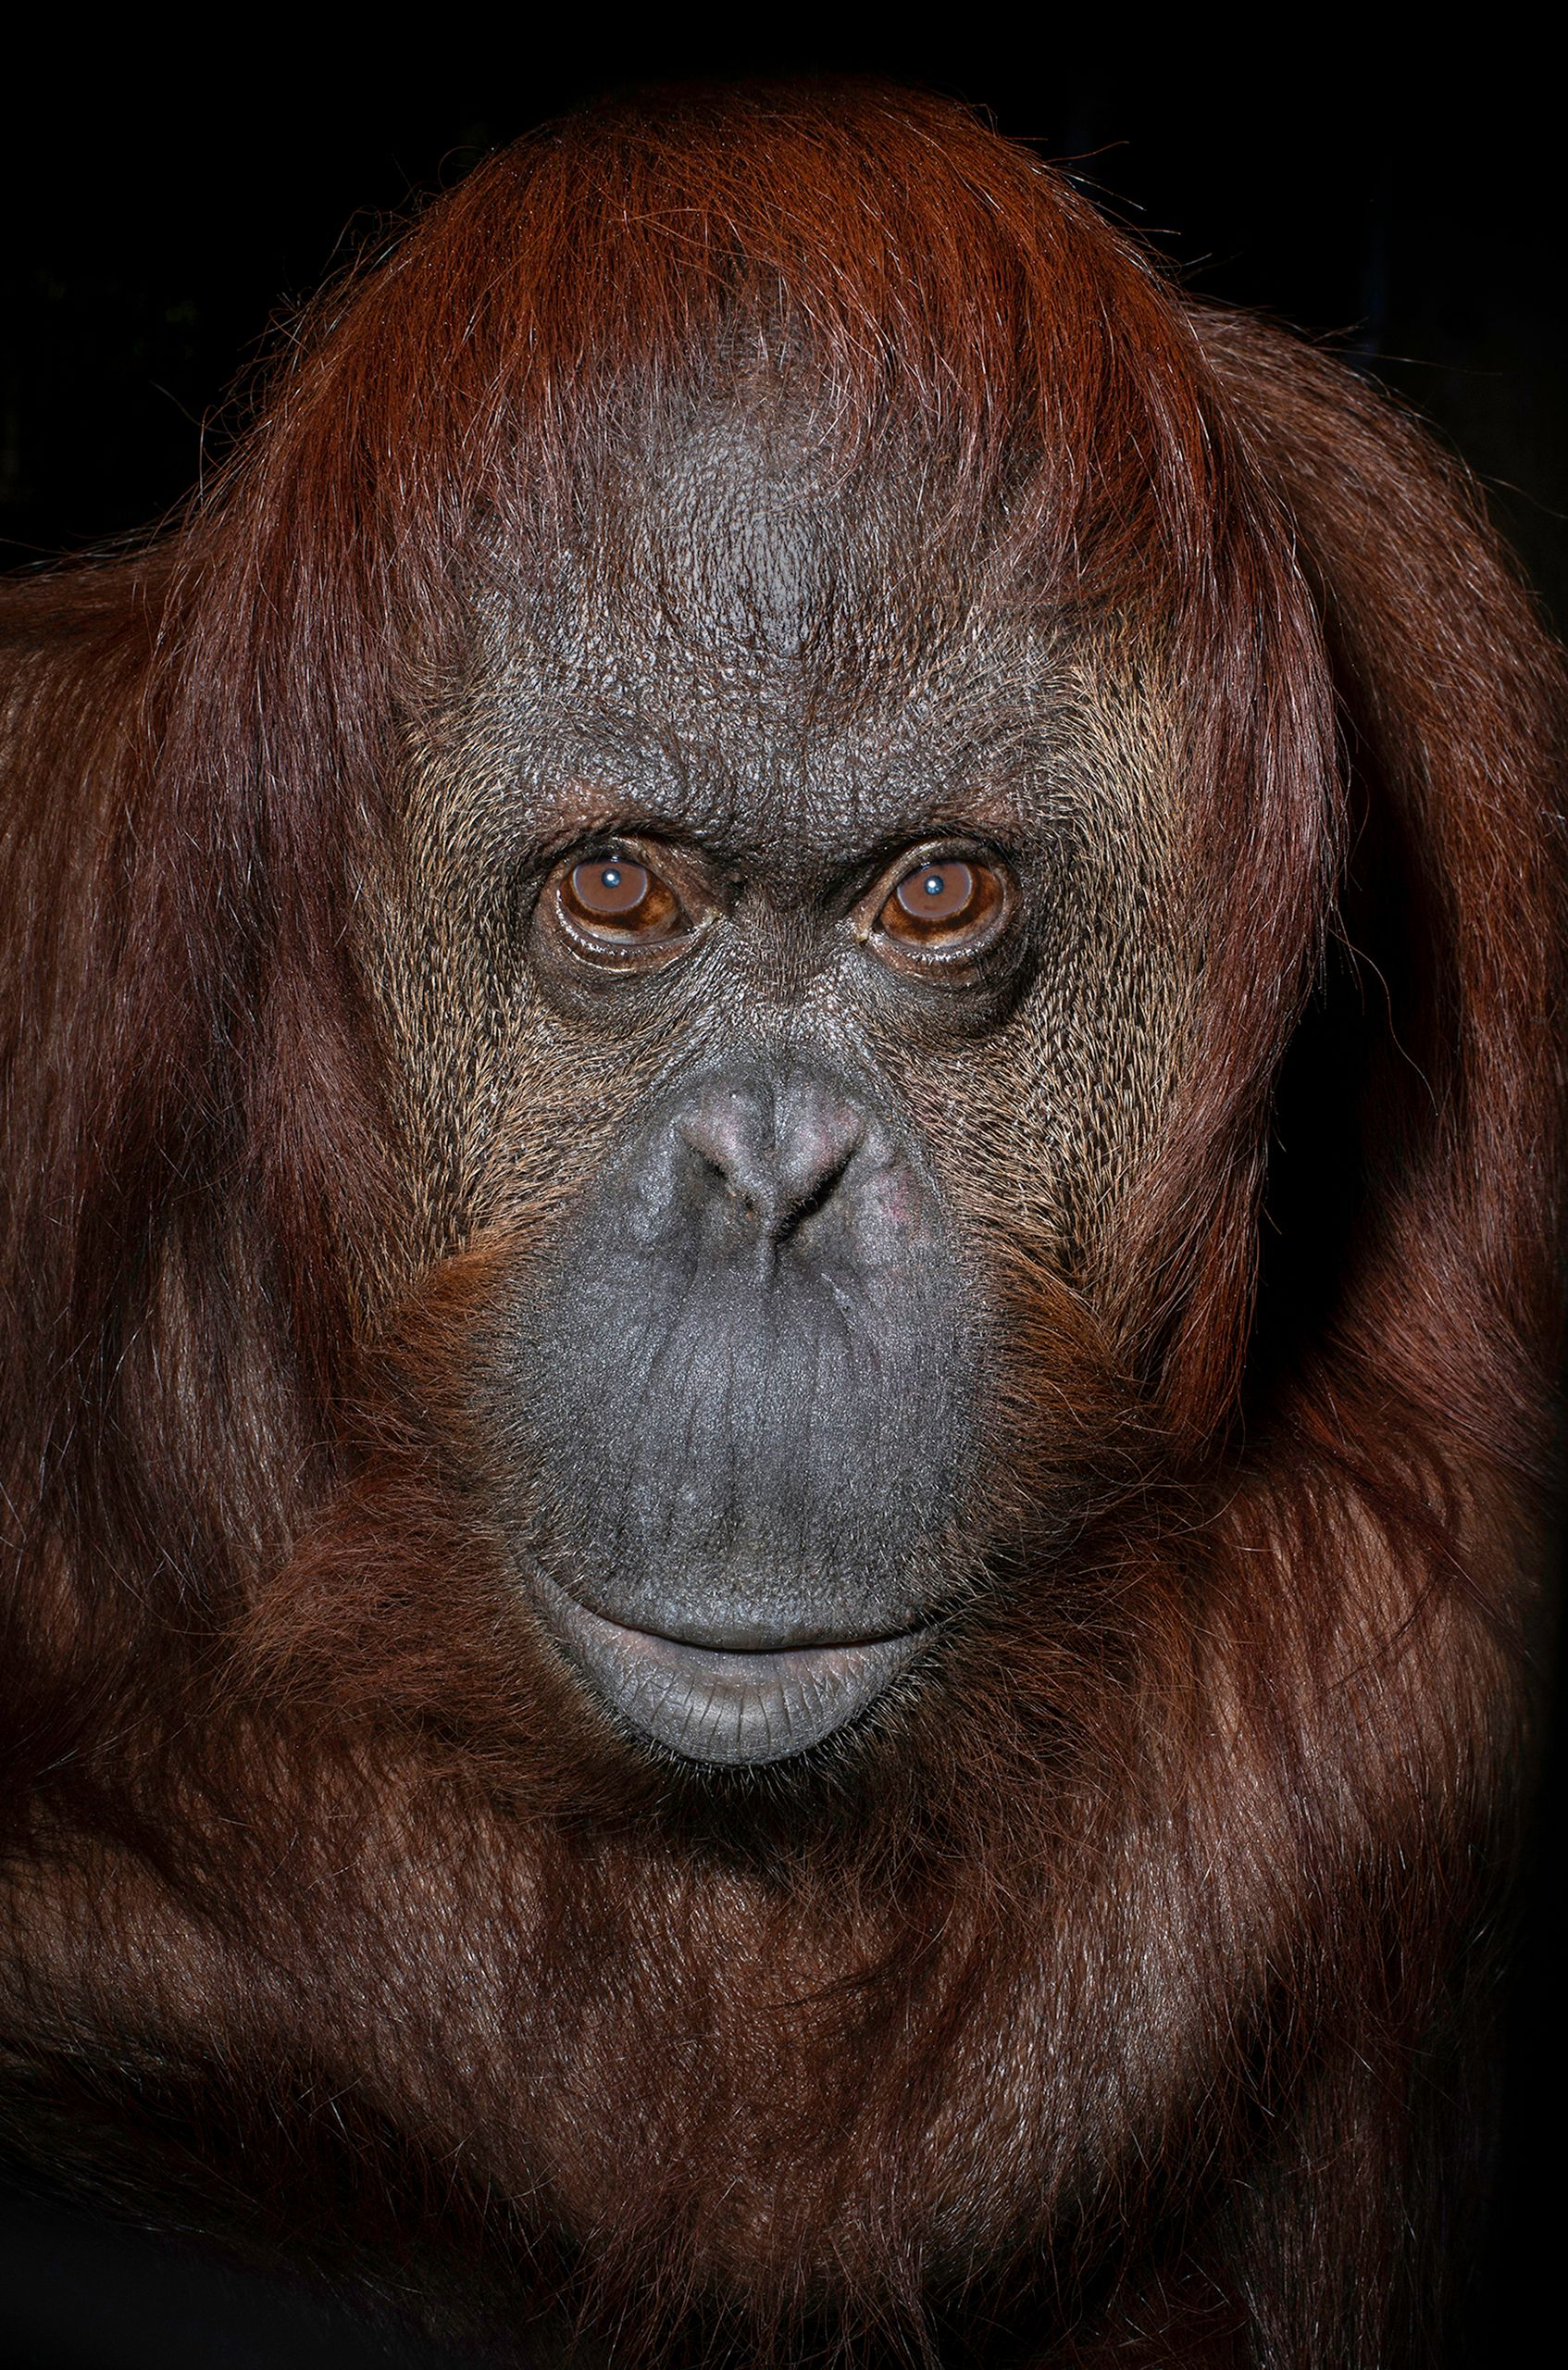 USA_FL_Center_Great_Apes_Sandra_6481_WEB.jpg